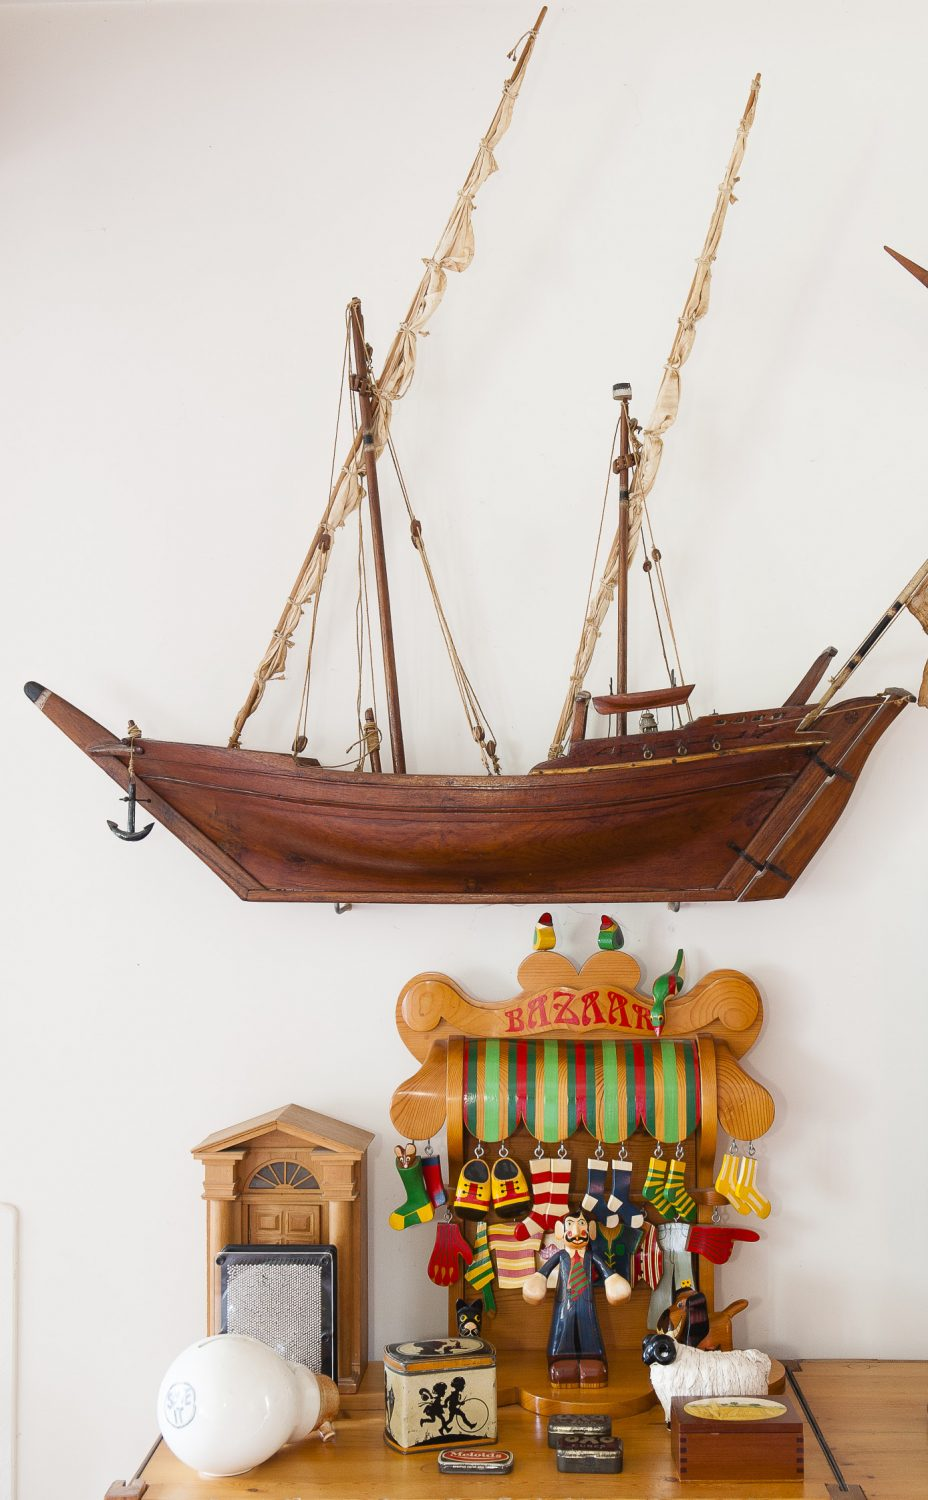 Many of the objects on display in the sitting room belong to Dave, most of them model boats